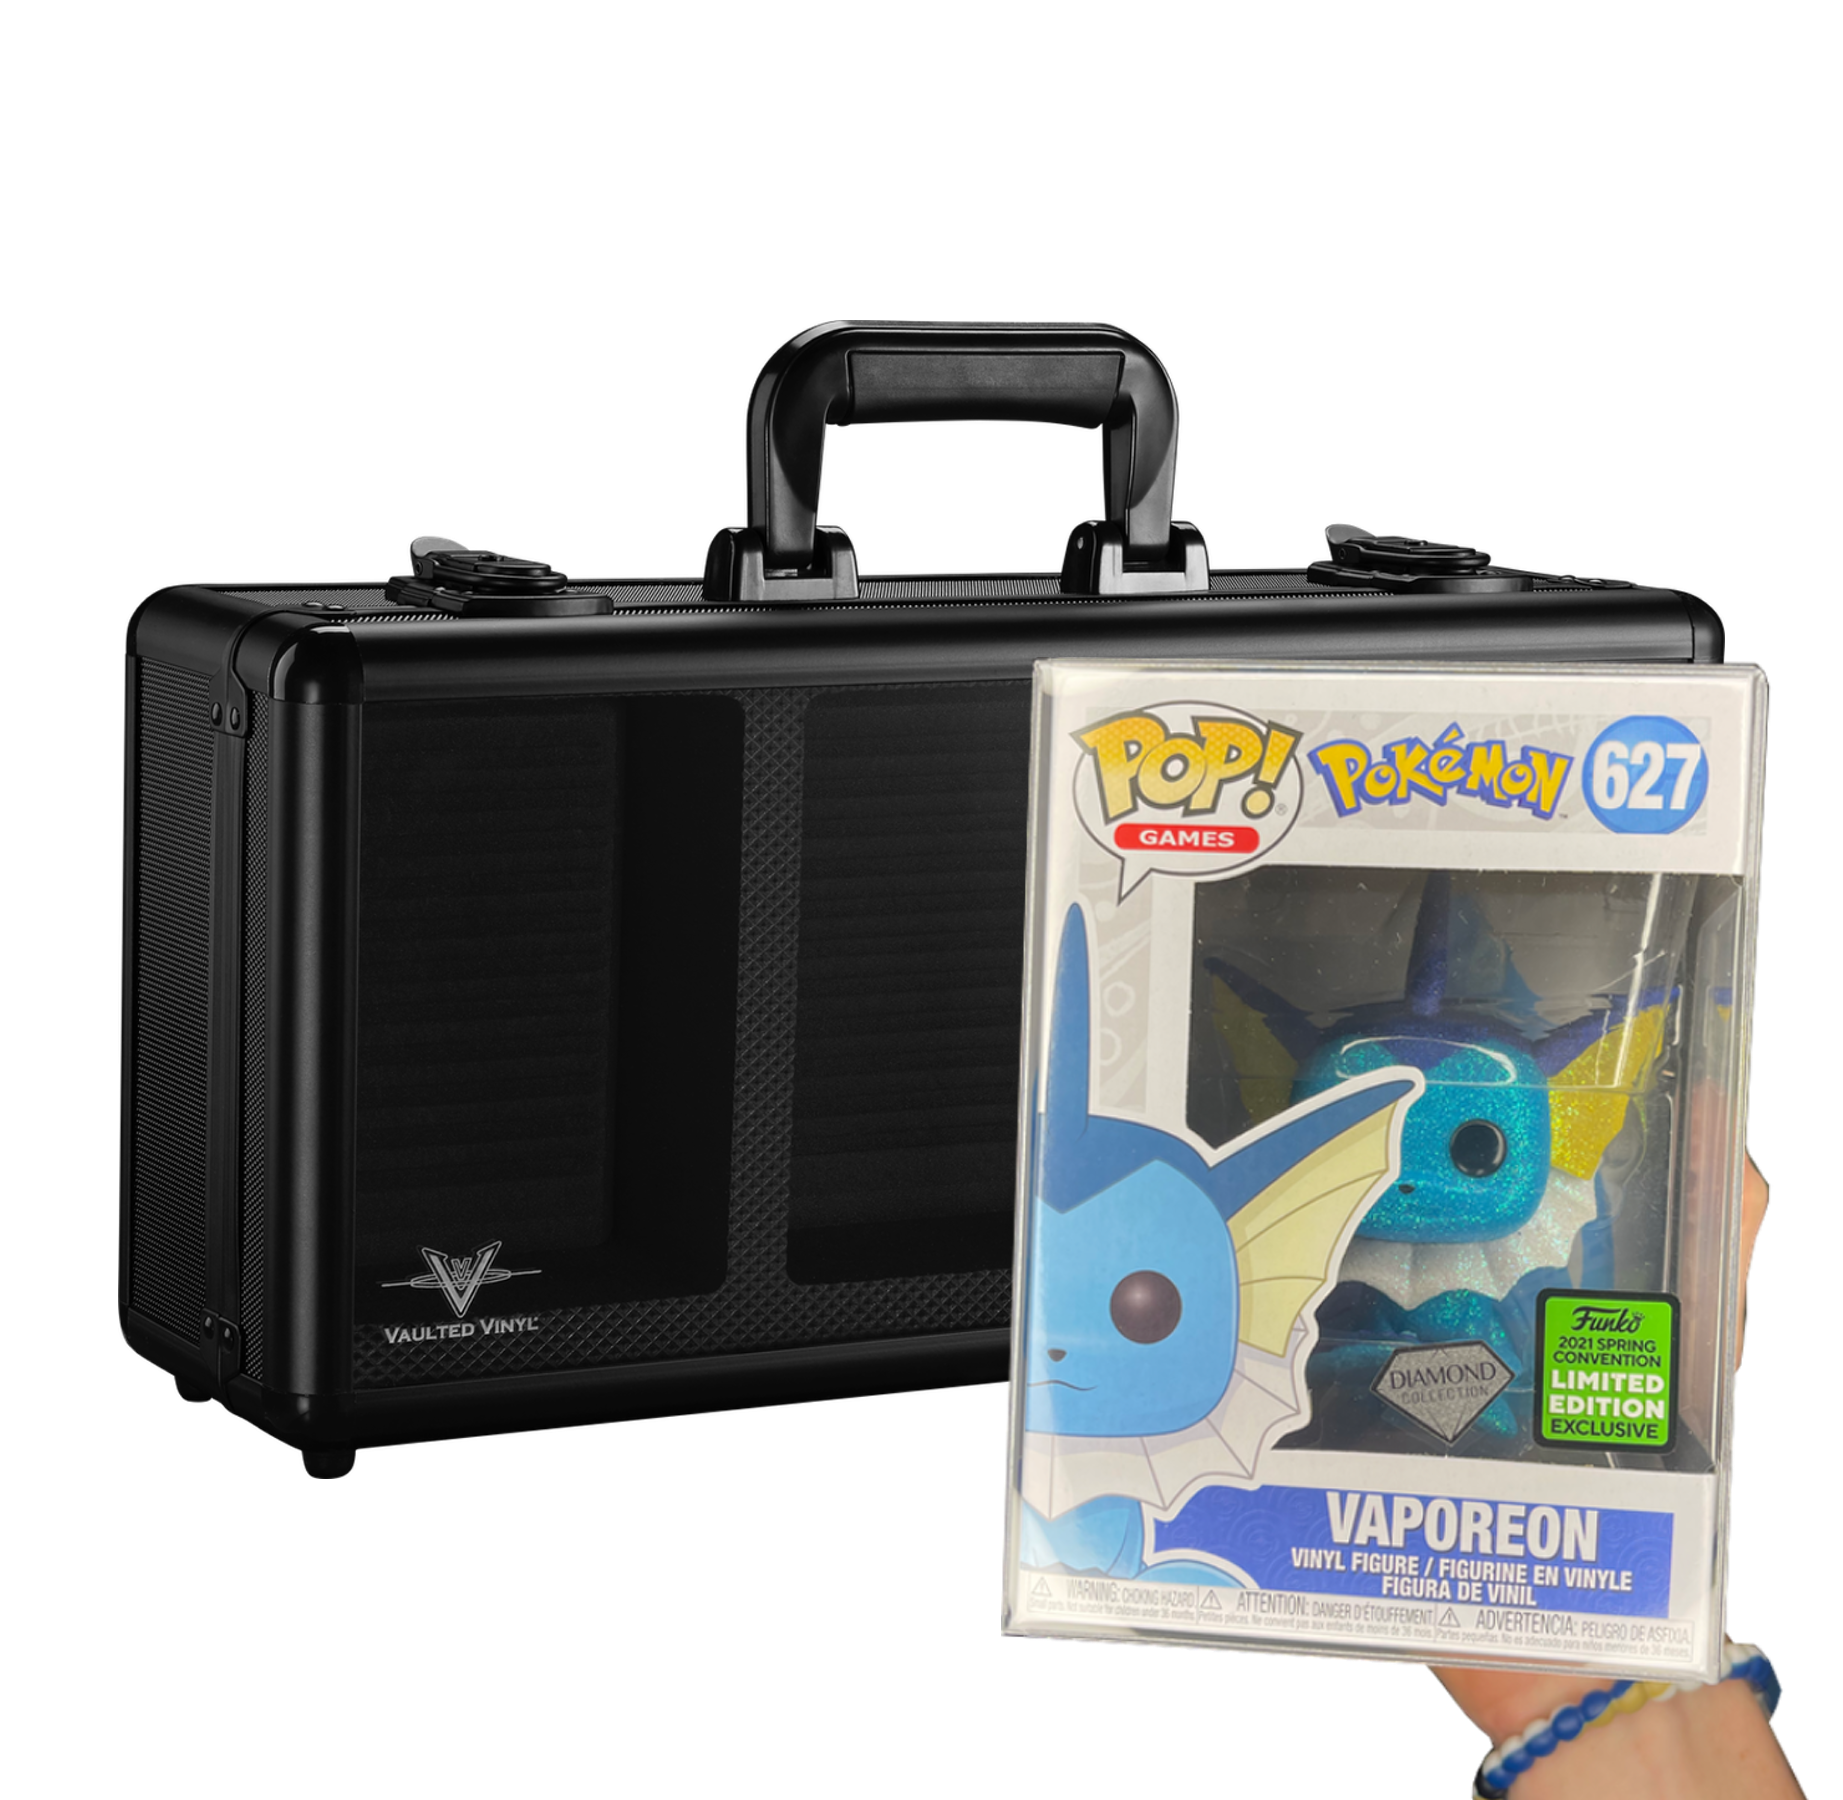 2021 Spring Convention Limited Edition Exclusive Vaporeon (Diamond Collection) Funko Pop!